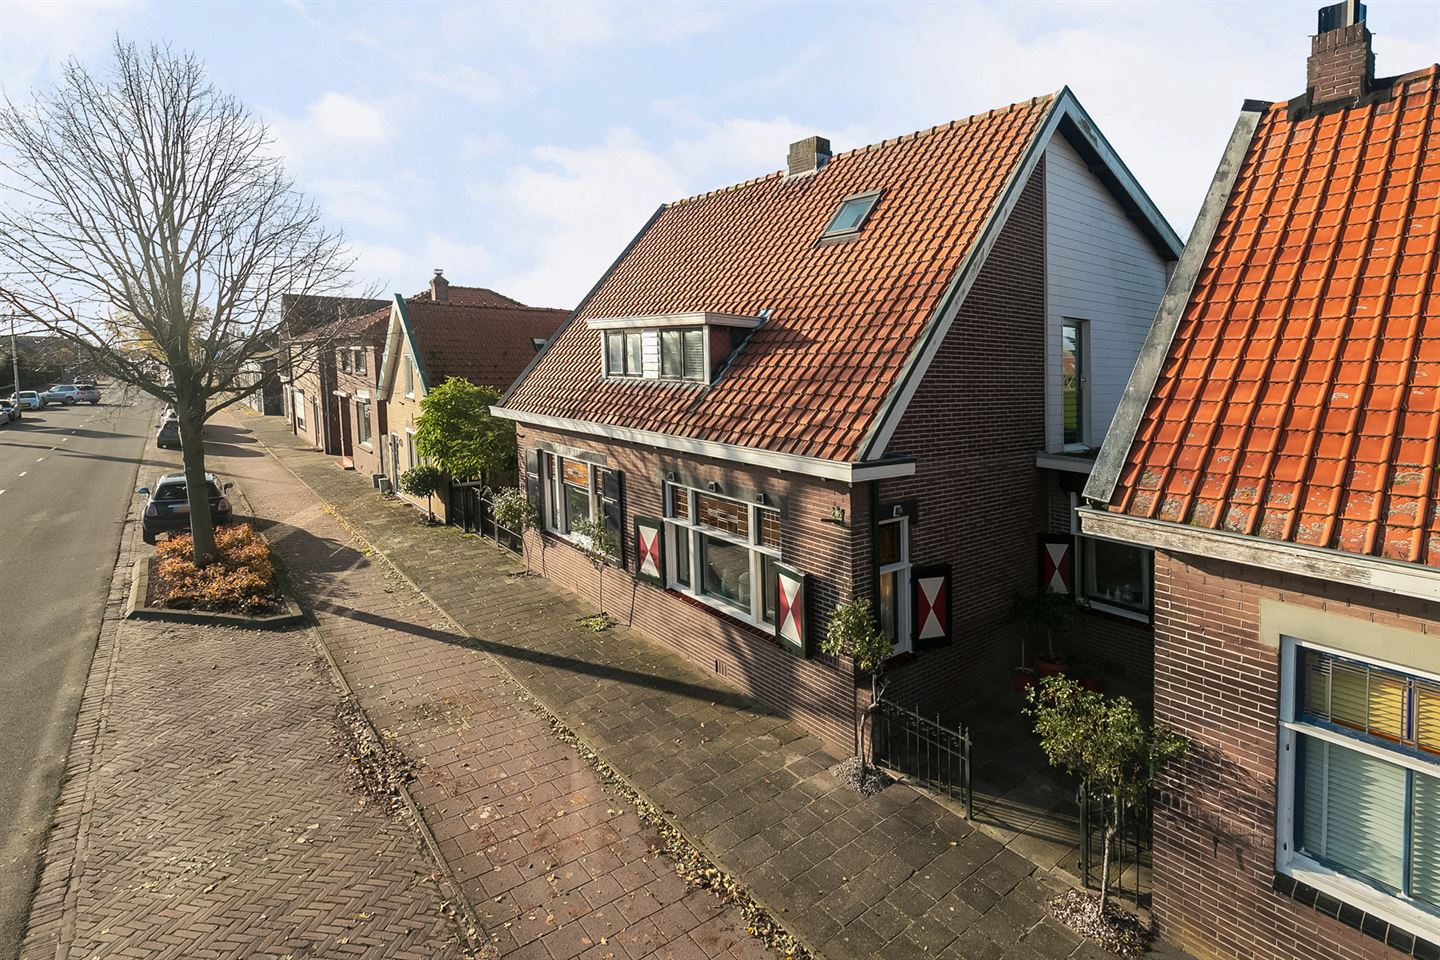 View photo 2 of Burg de Zeeuwstraat 189 A